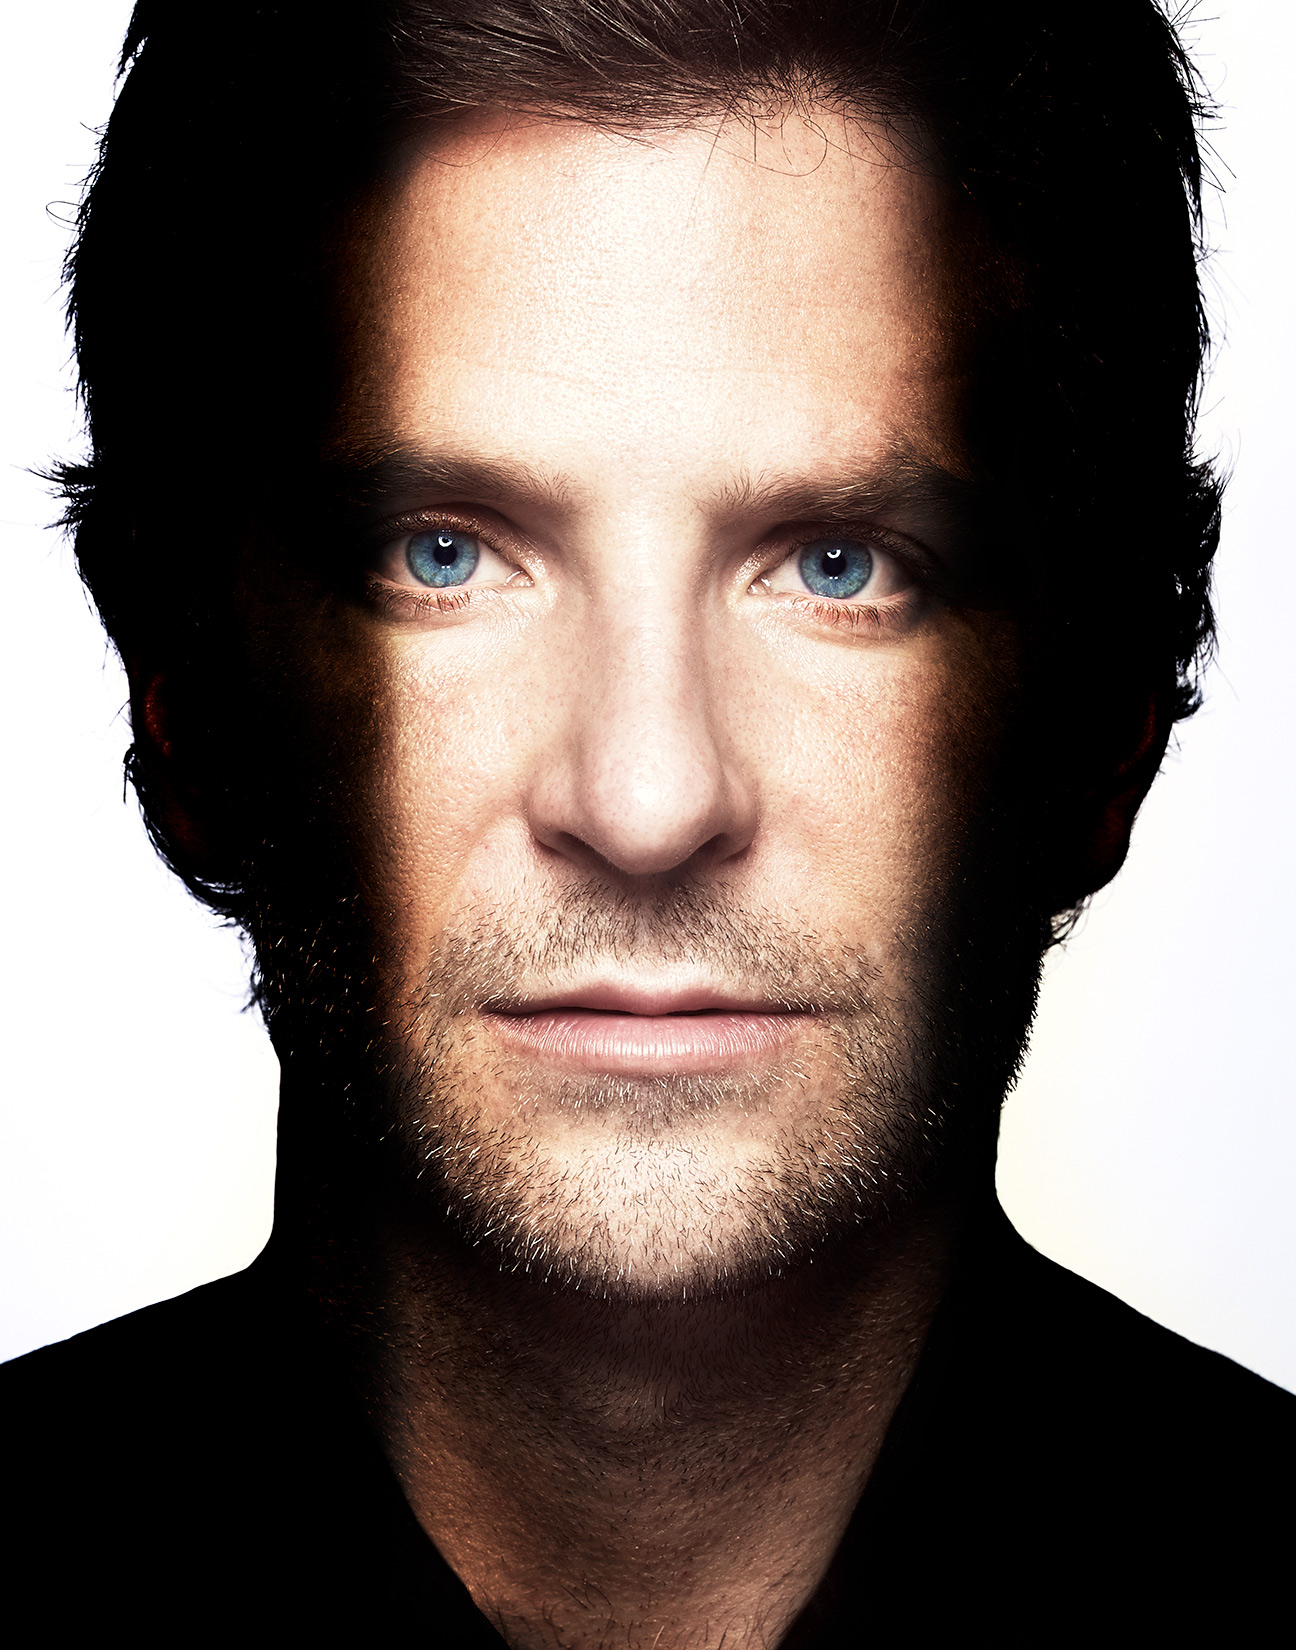 Bradley-Cooper-VF-by-Robert-Ascroft